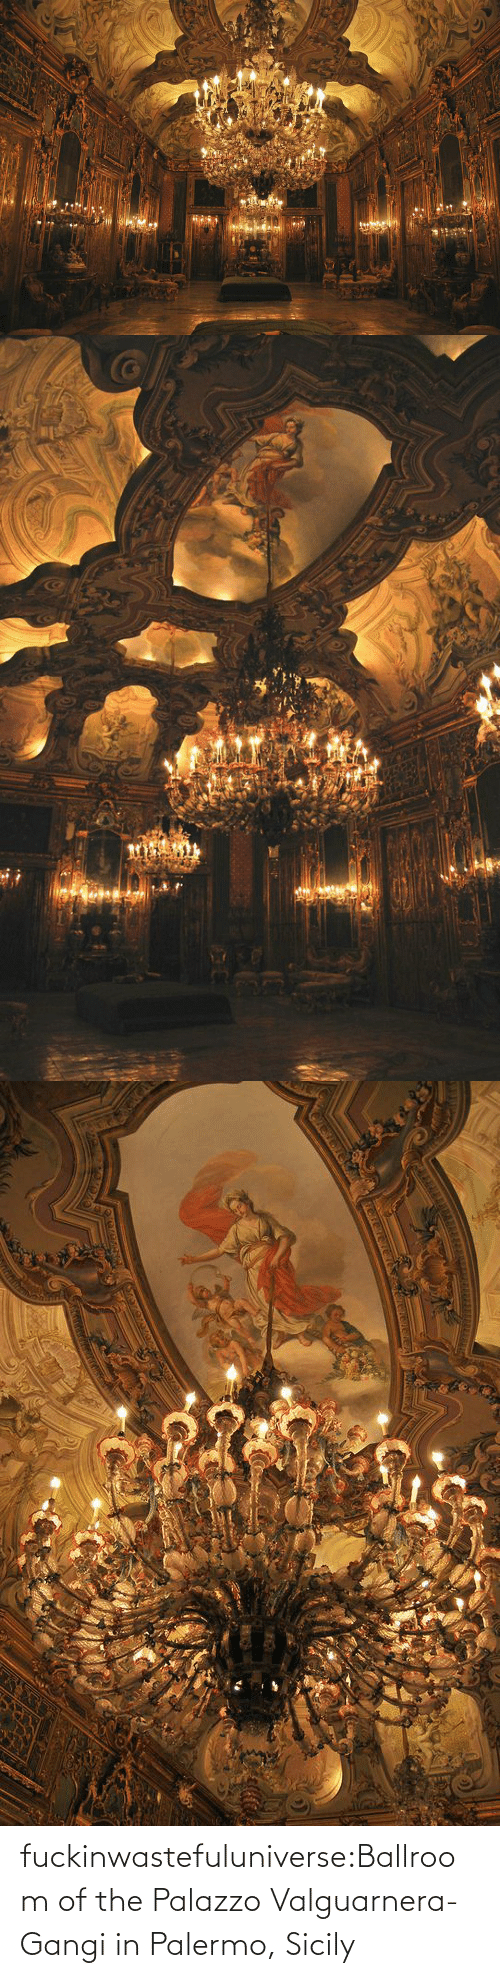 In Class: fuckinwastefuluniverse:Ballroom of the Palazzo Valguarnera-Gangi in Palermo, Sicily